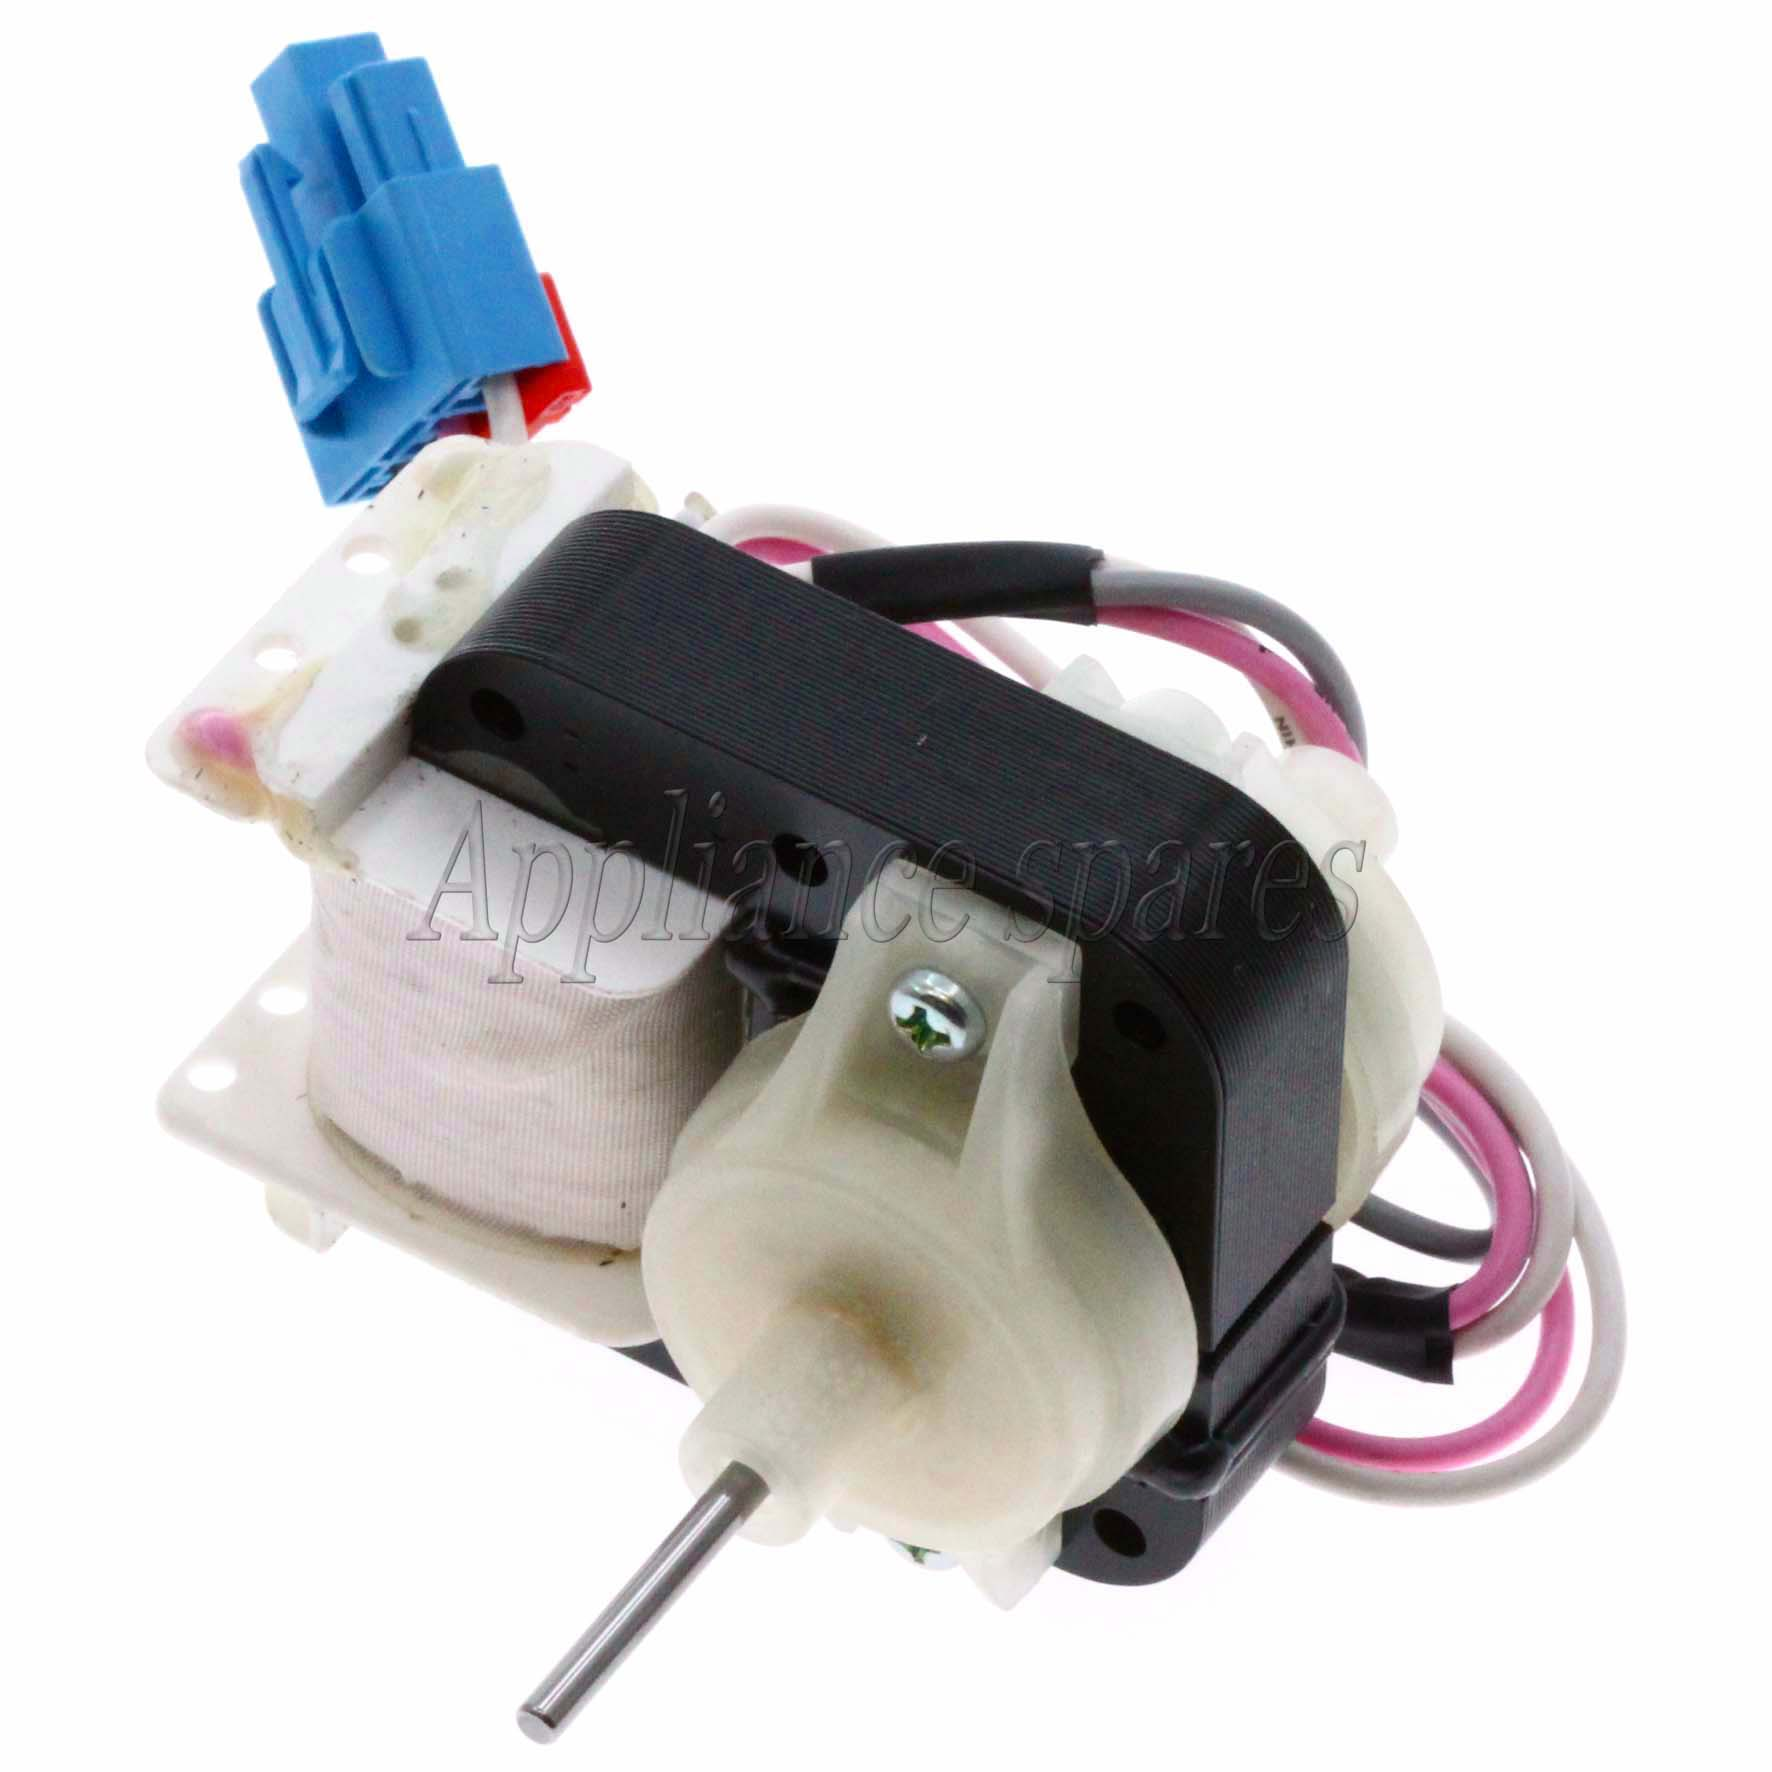 Lg Fridge Evaporator Fan Motor 220v 12w Lategan And Van